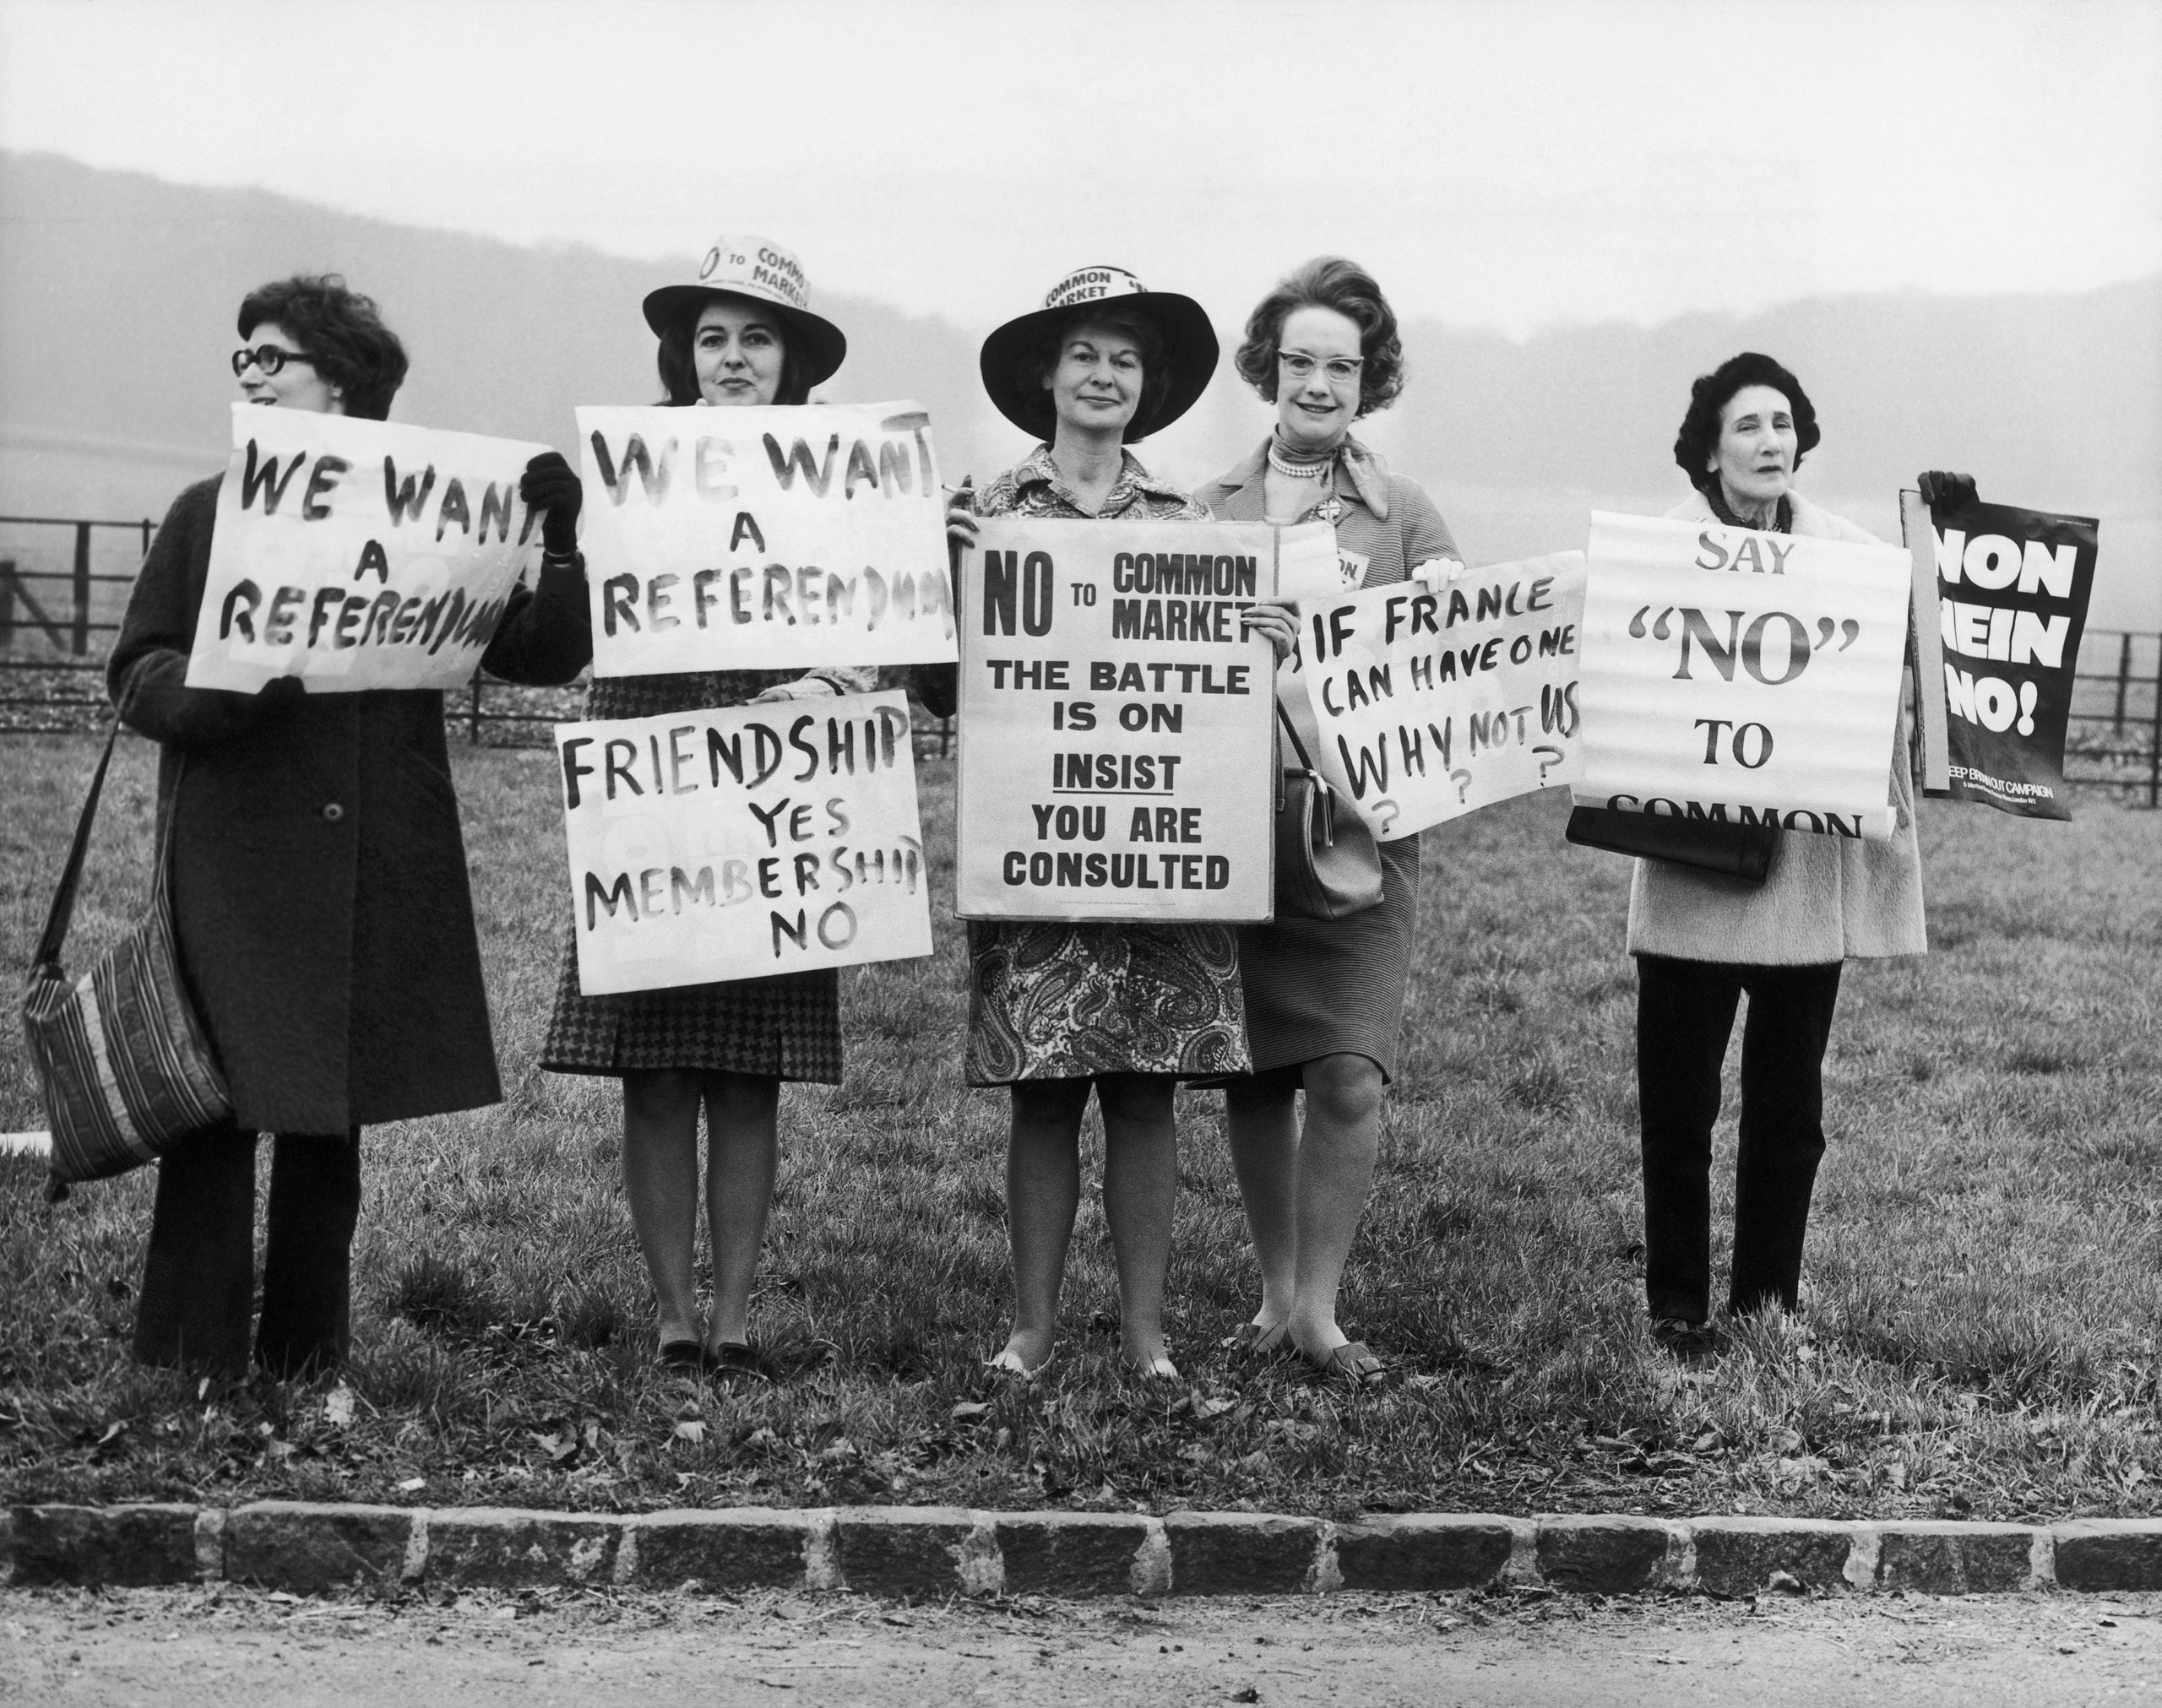 Demonstration during the meeting of French President Pompidou and British Prime Minister Edward Heath at Chequers, 1972.